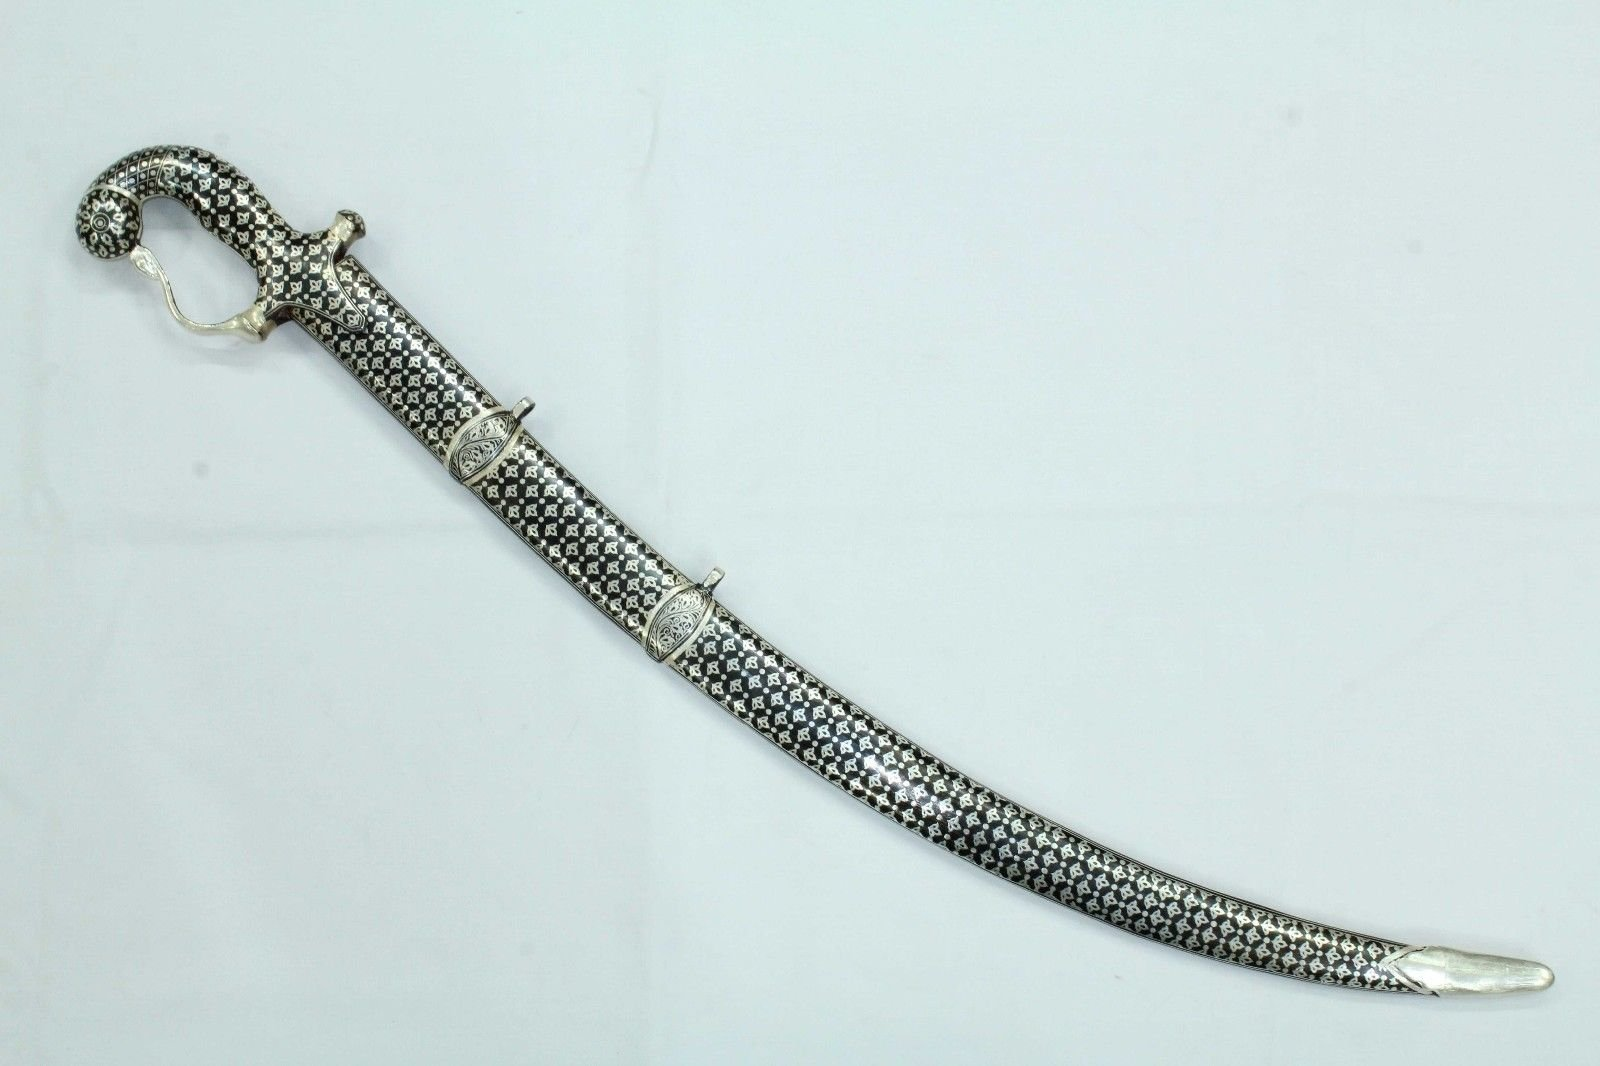 Rajasthan Gems Sword Damascus Steel Blade Silver Wire Bidaree Work on sheath and Handle 32''